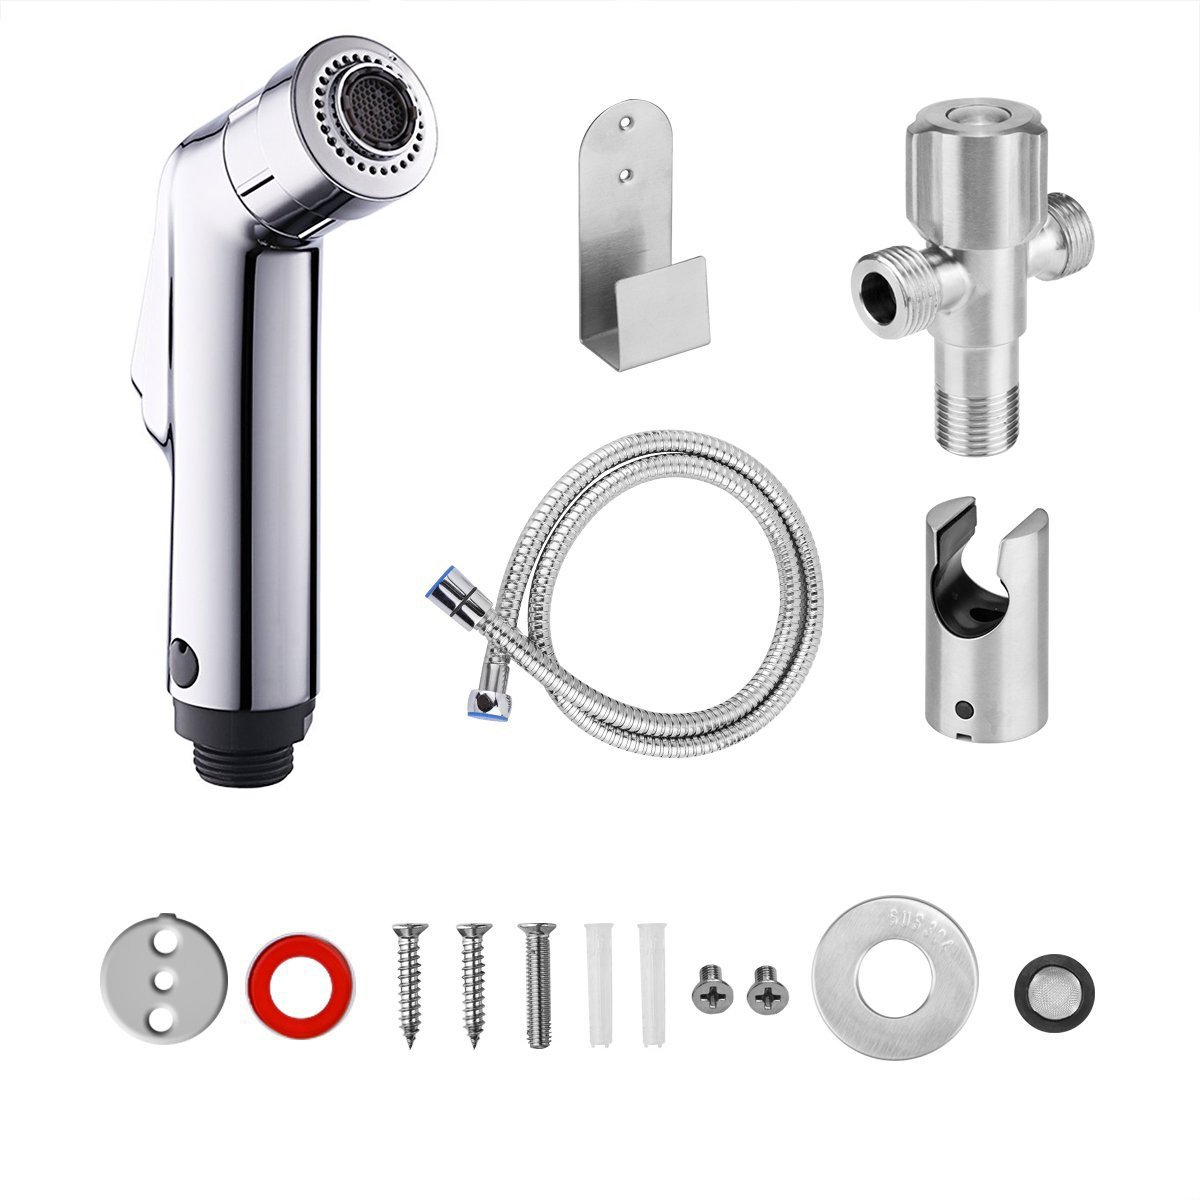 AOZBZ 2 Modes Toilet Hand Held Bidet Sprayer Kit, Shower Bidet Tap Shattaf Spray Faucet Cloth Diaper Cleaning with Hose, G1/2 Tee Angle Valve, Bracket Holder, Holder Hook